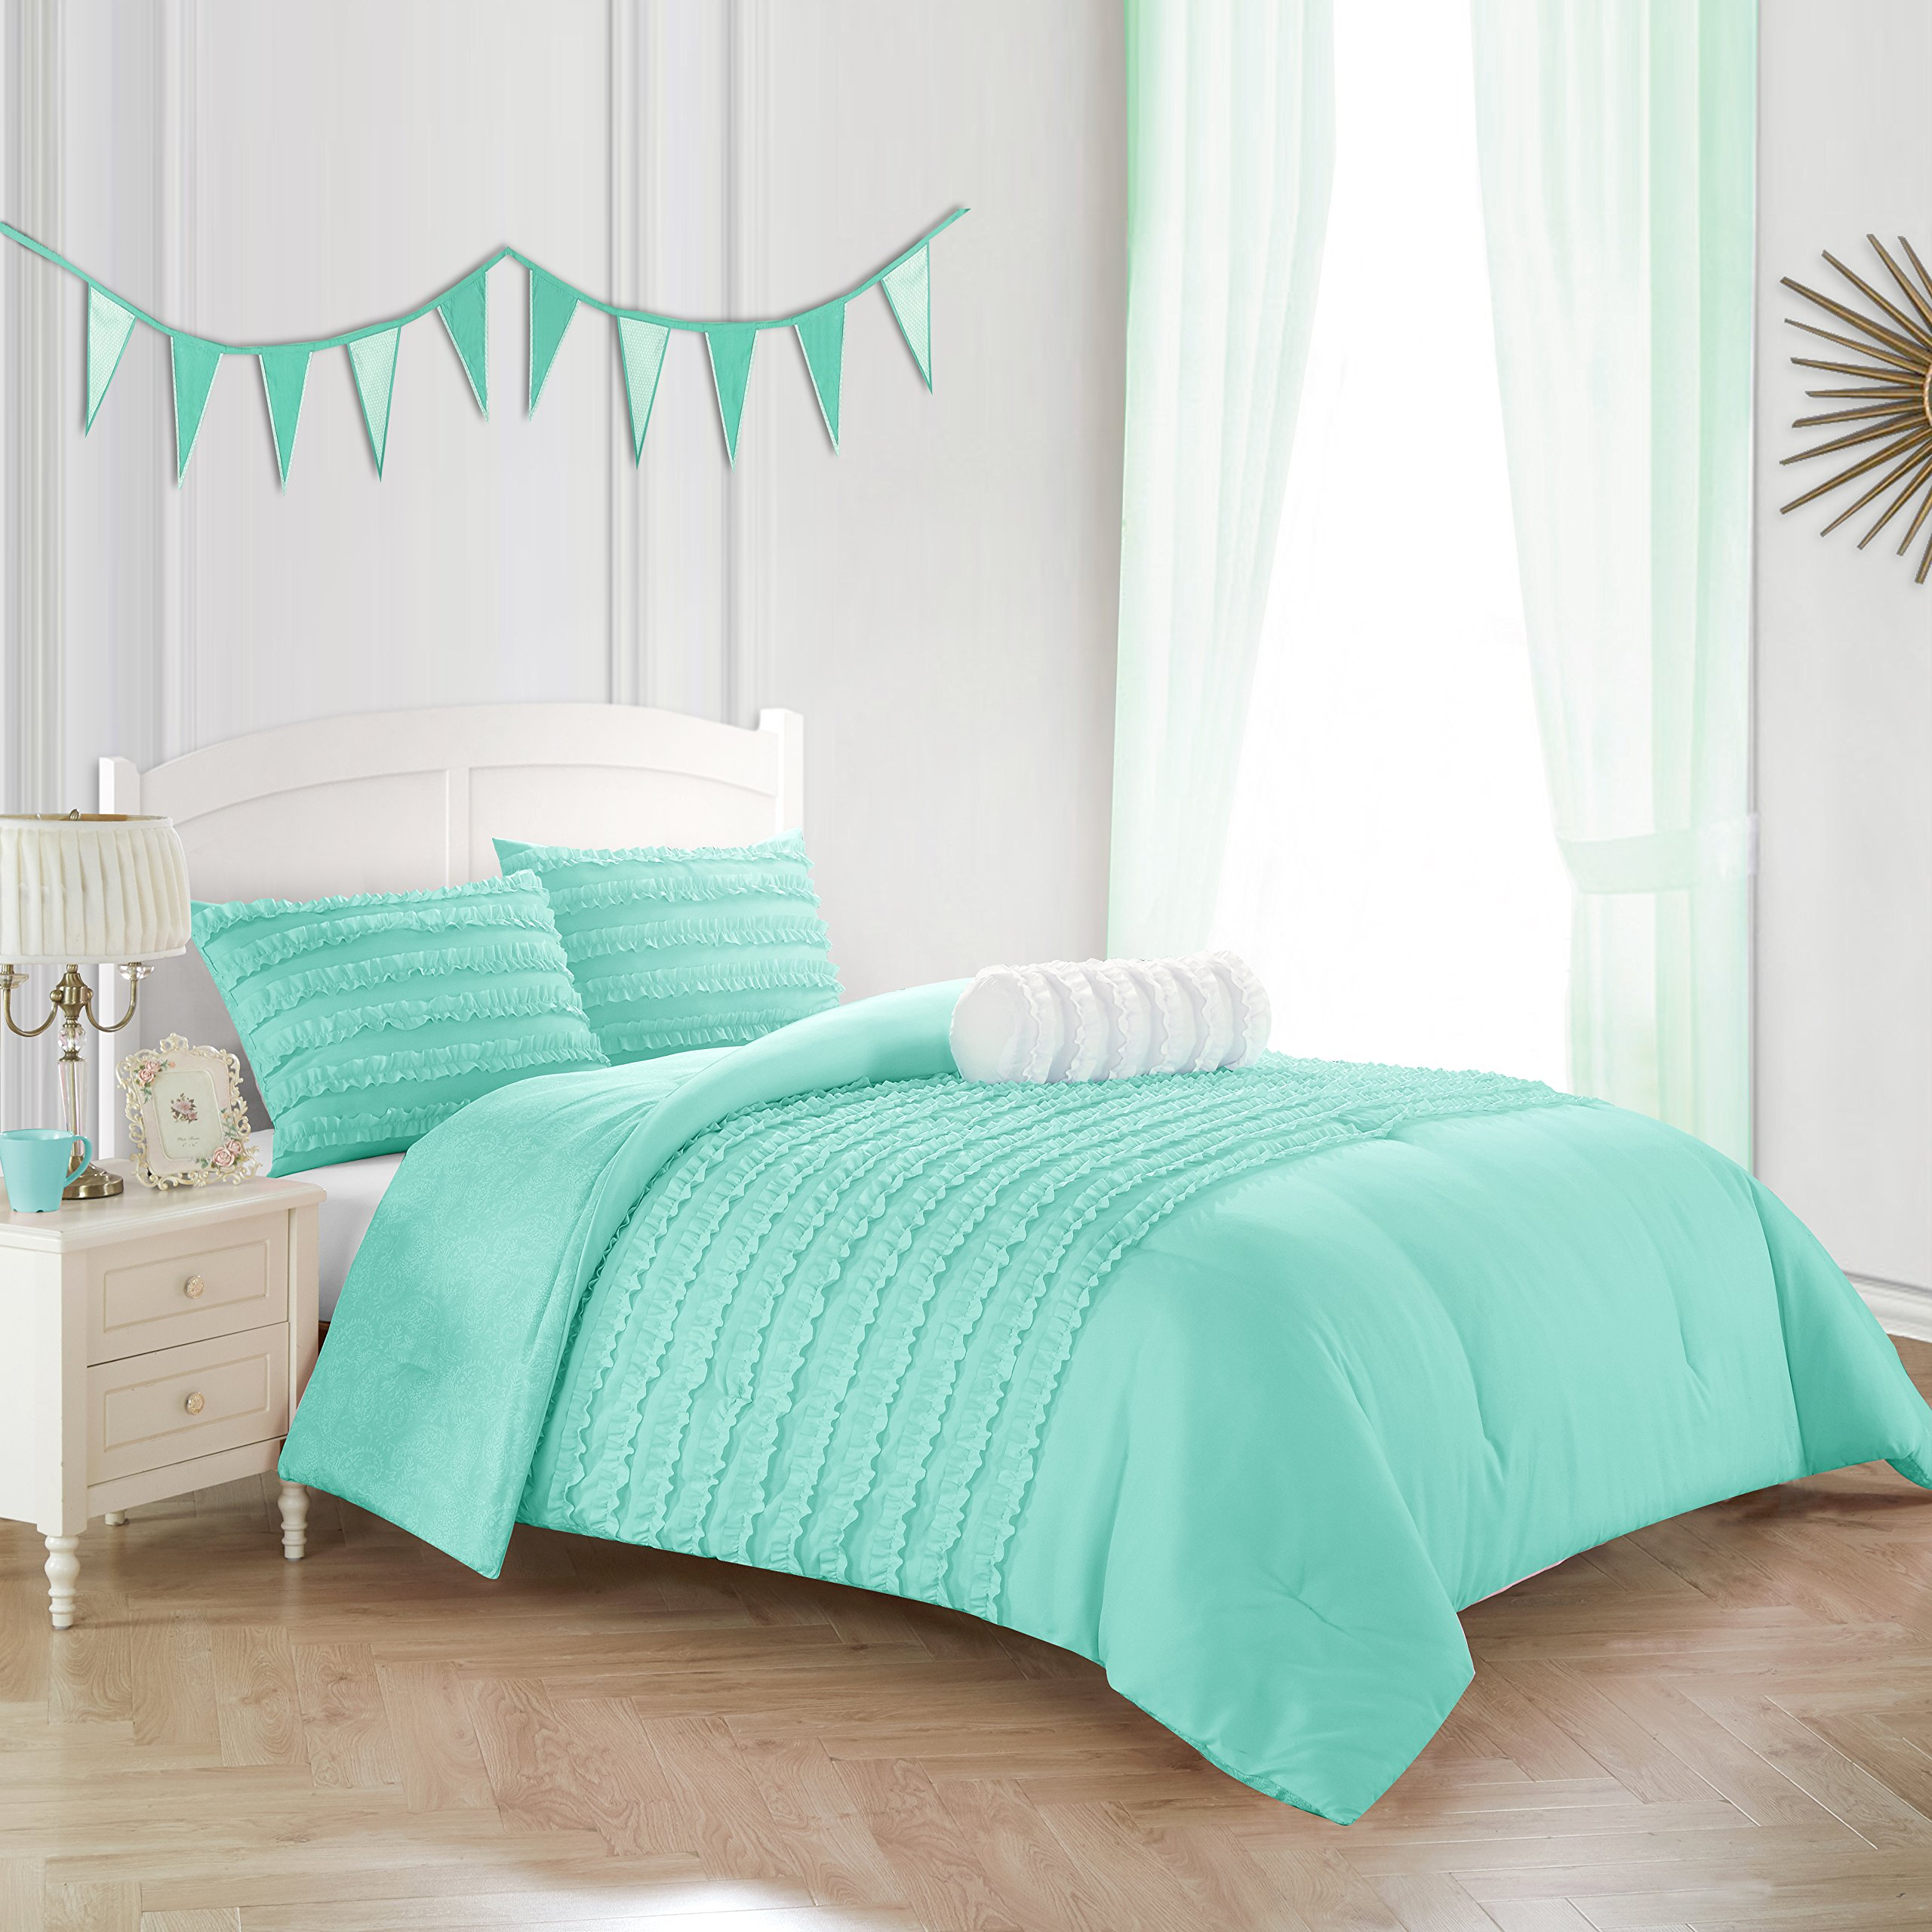 Heritage Kids Rhea Textured Ruffle Comforter Set, Twin, Mint